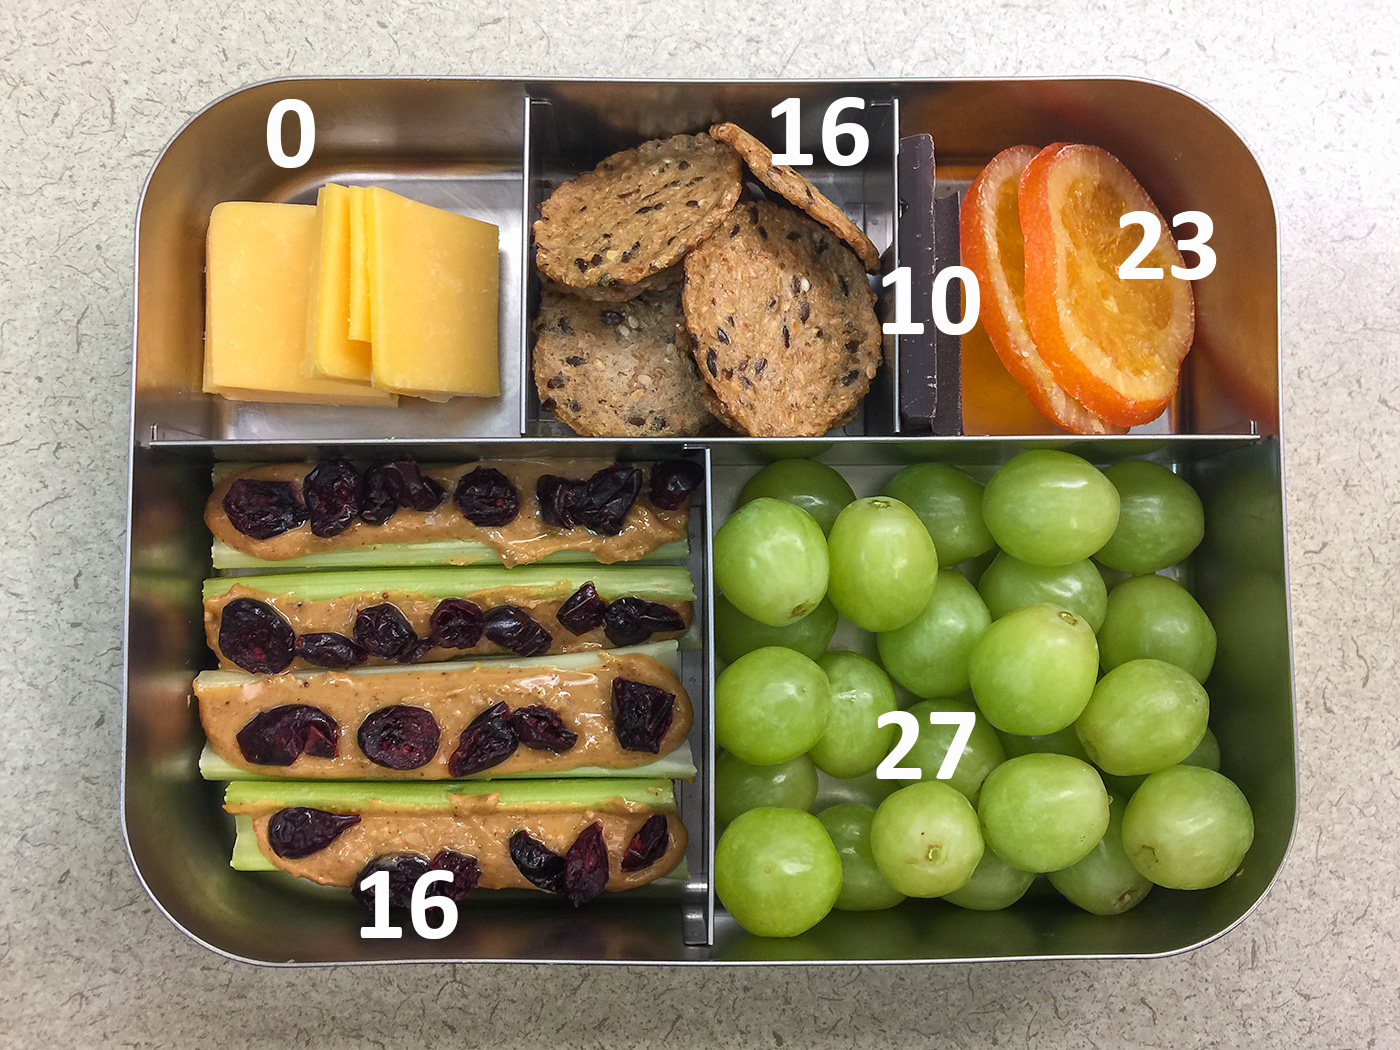 Fire ants on a log bento with carbohydrate